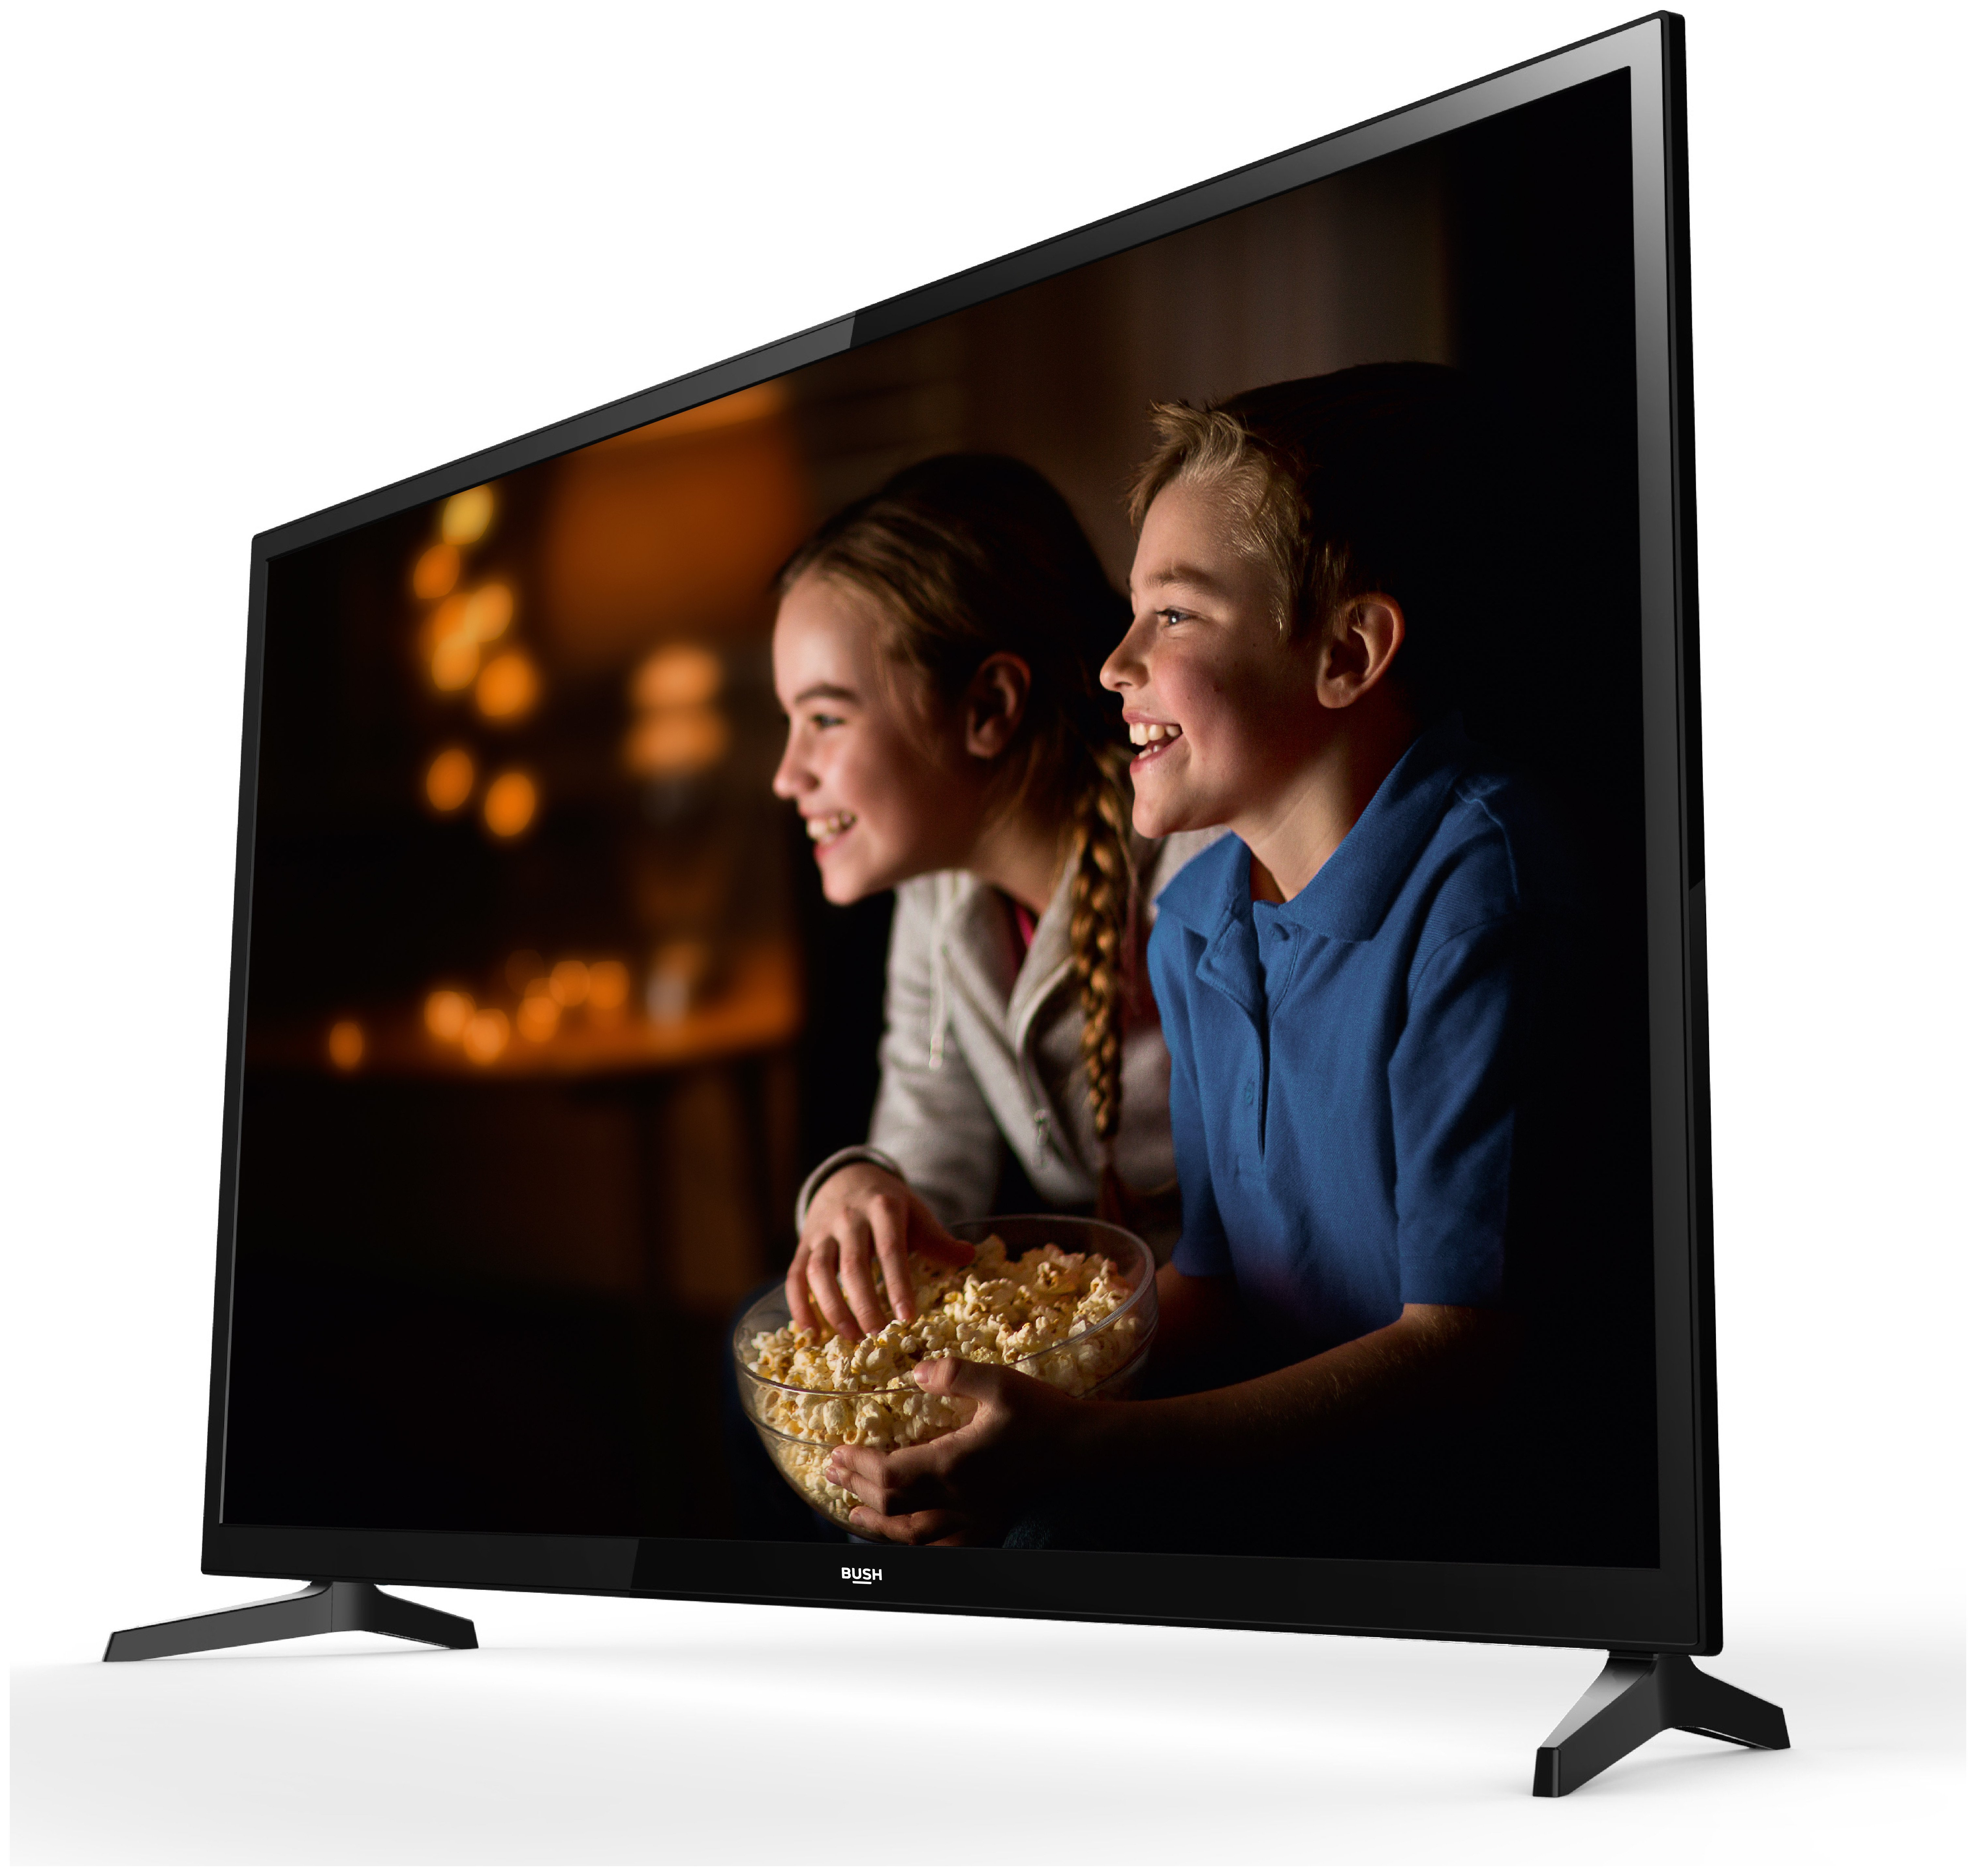 bush 24 inch full hd 1080p digital lcd tv